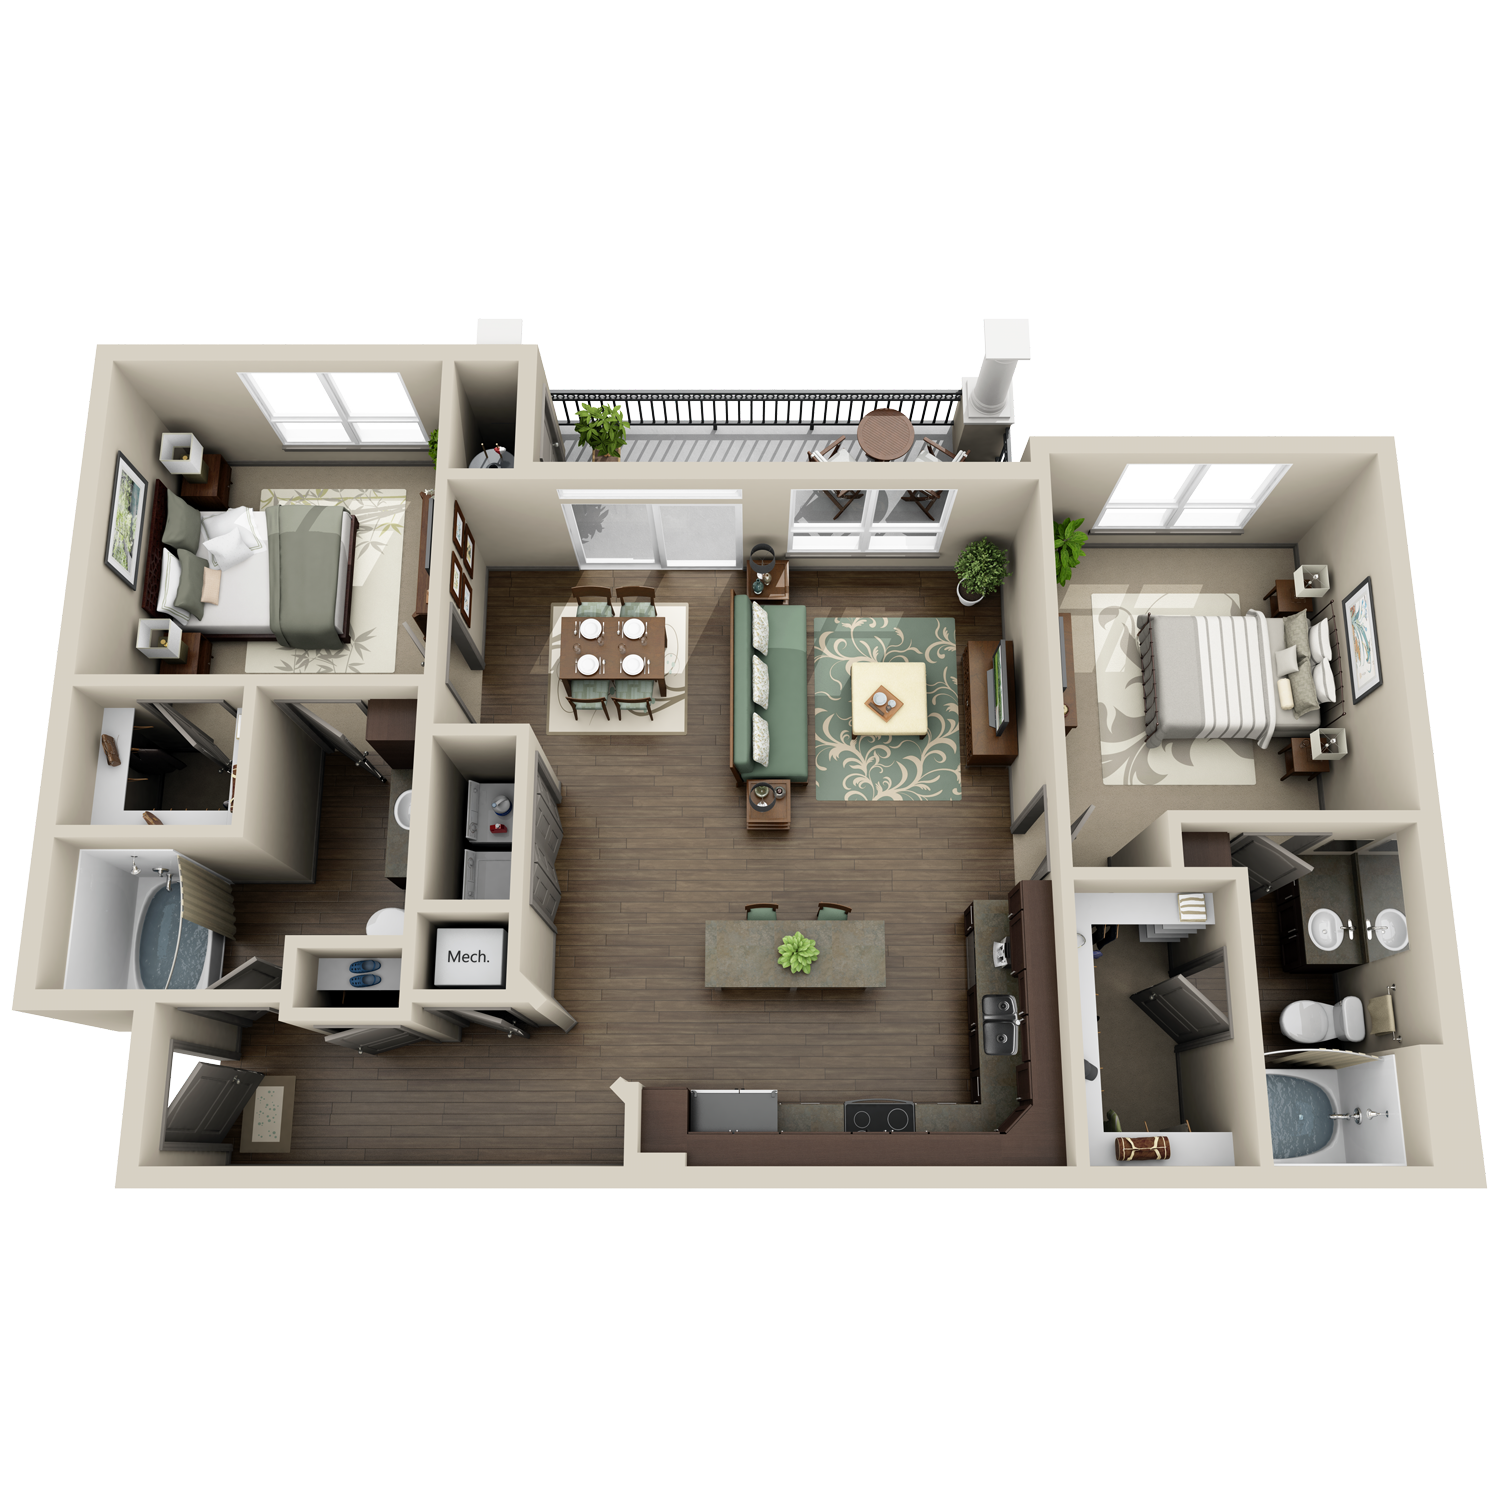 B3 floor plan featuring 2 bedrooms and 2 baths